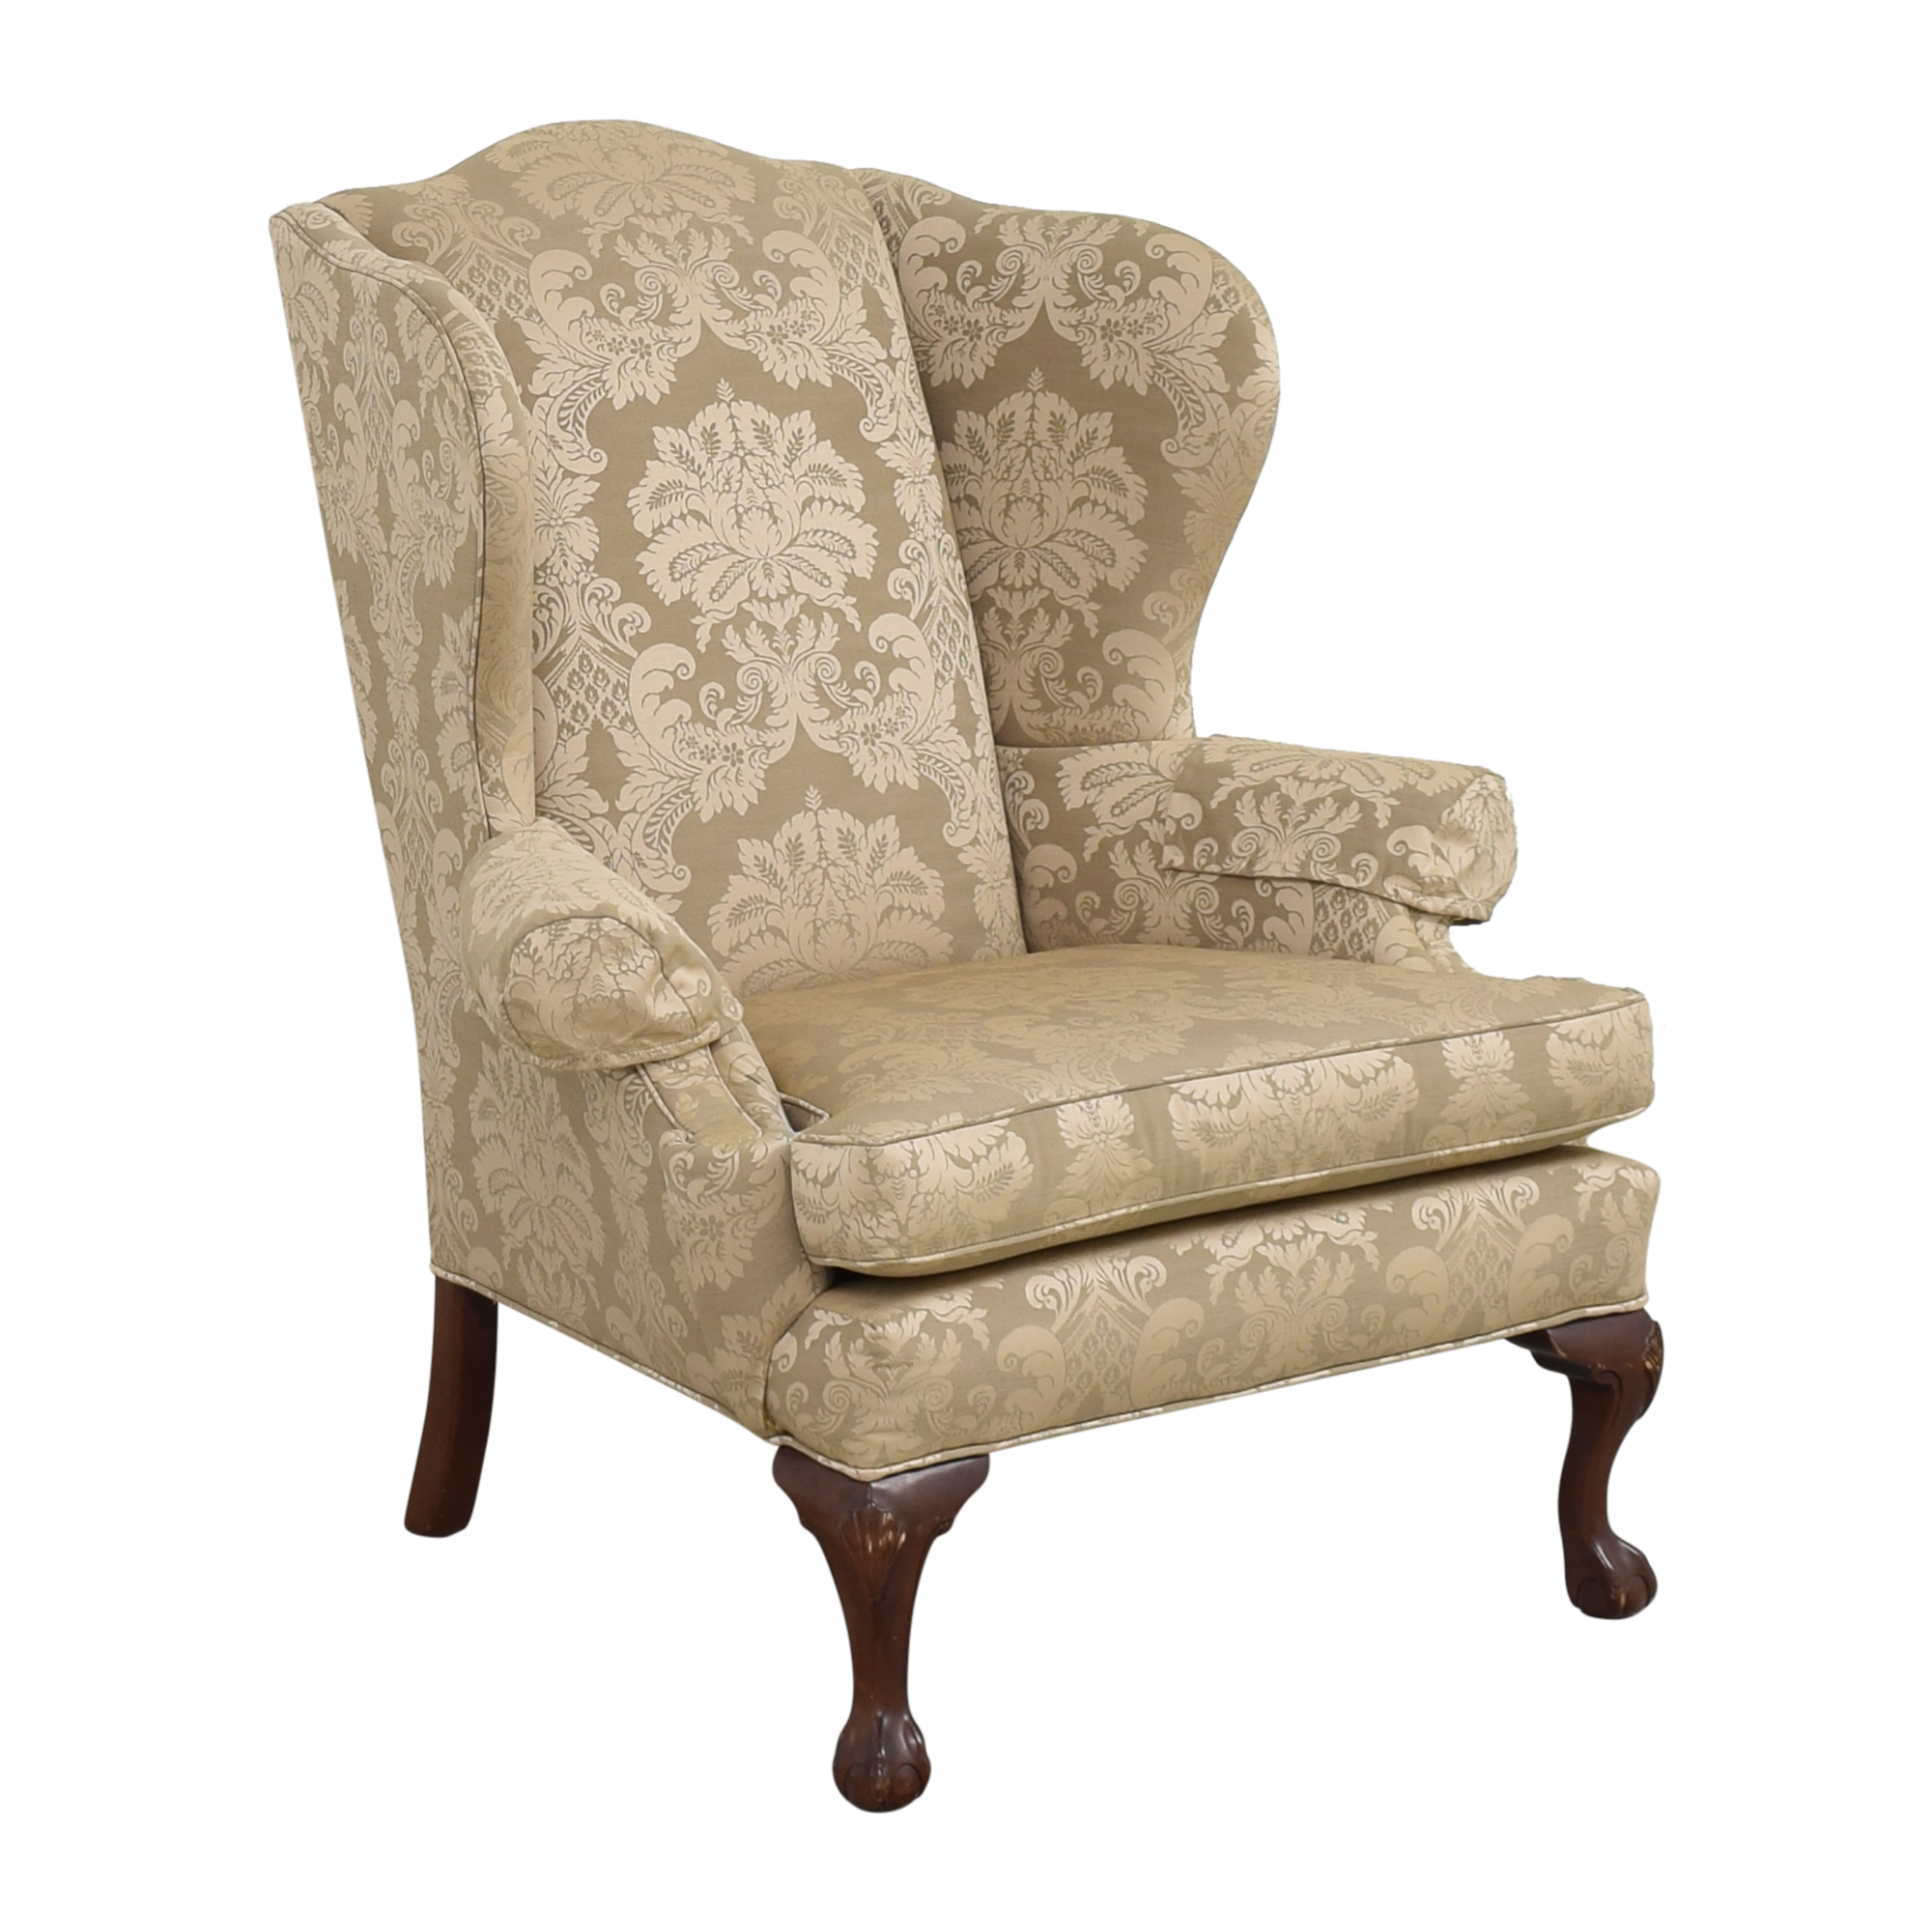 buy Ethan Allen Wing Accent Chair Ethan Allen Chairs